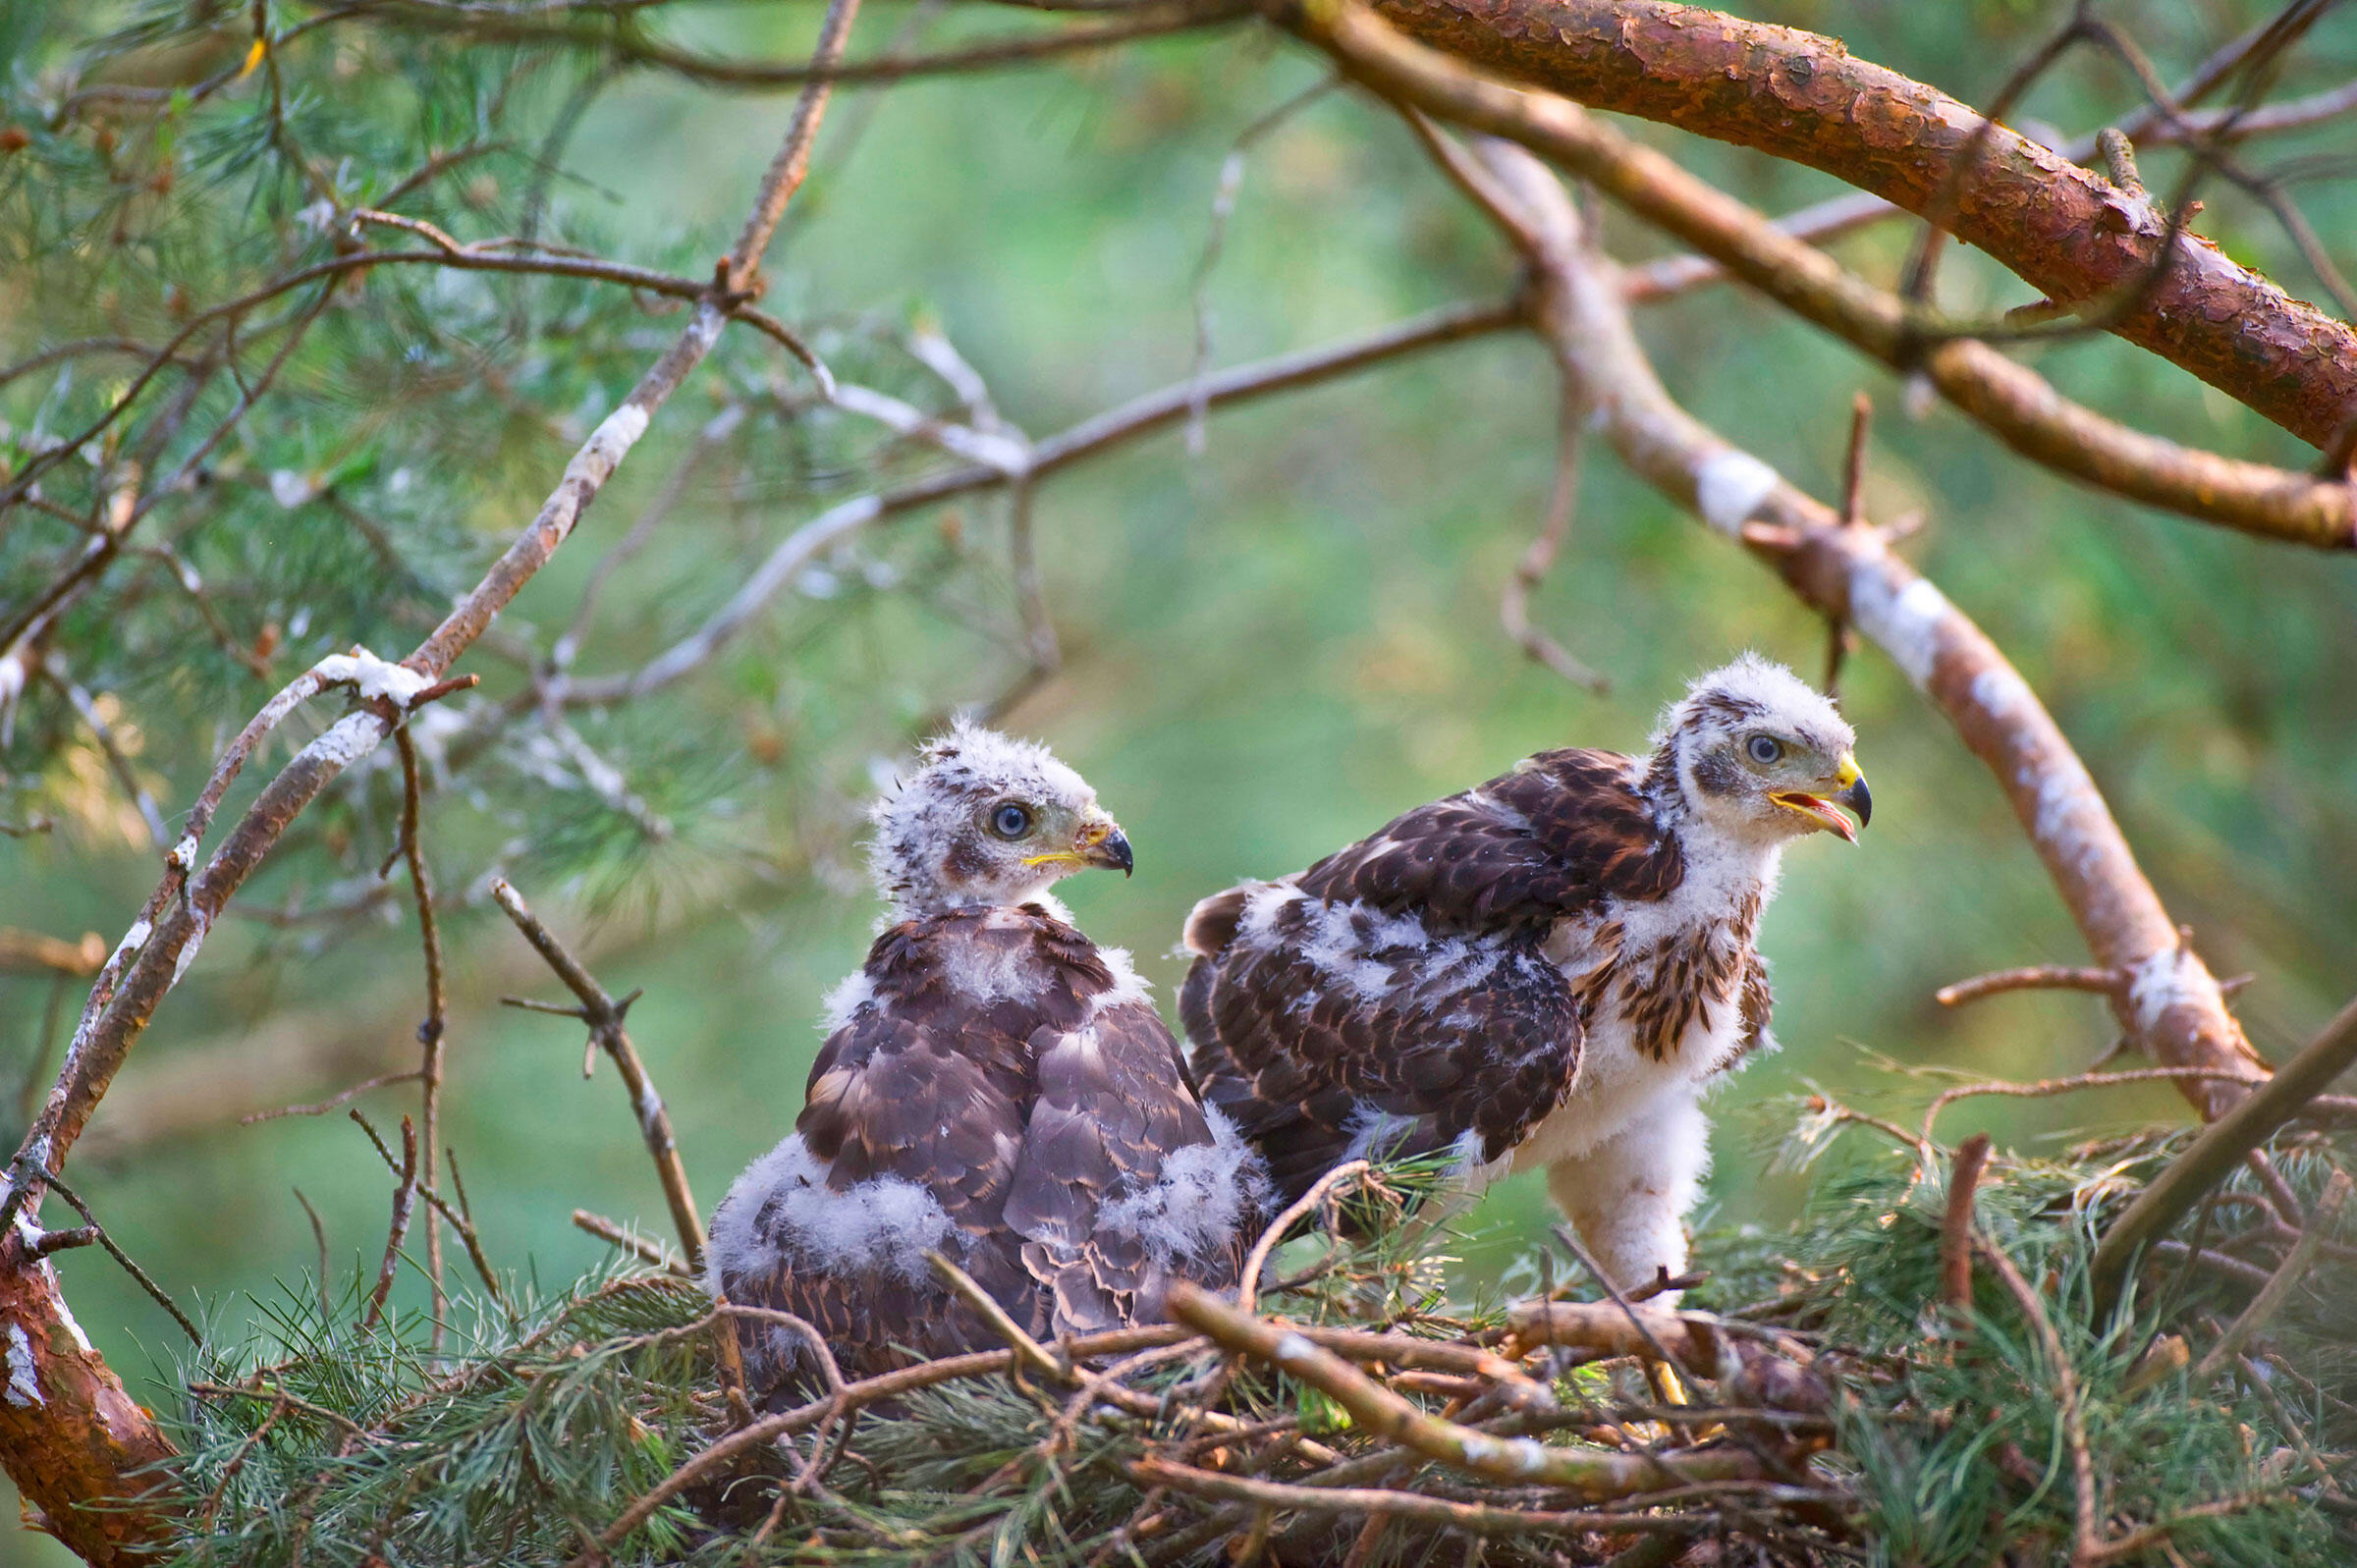 A pair of Northern Goshawk chicks waits for the next nest delivery from their parents. Blickwinkel/Alamy